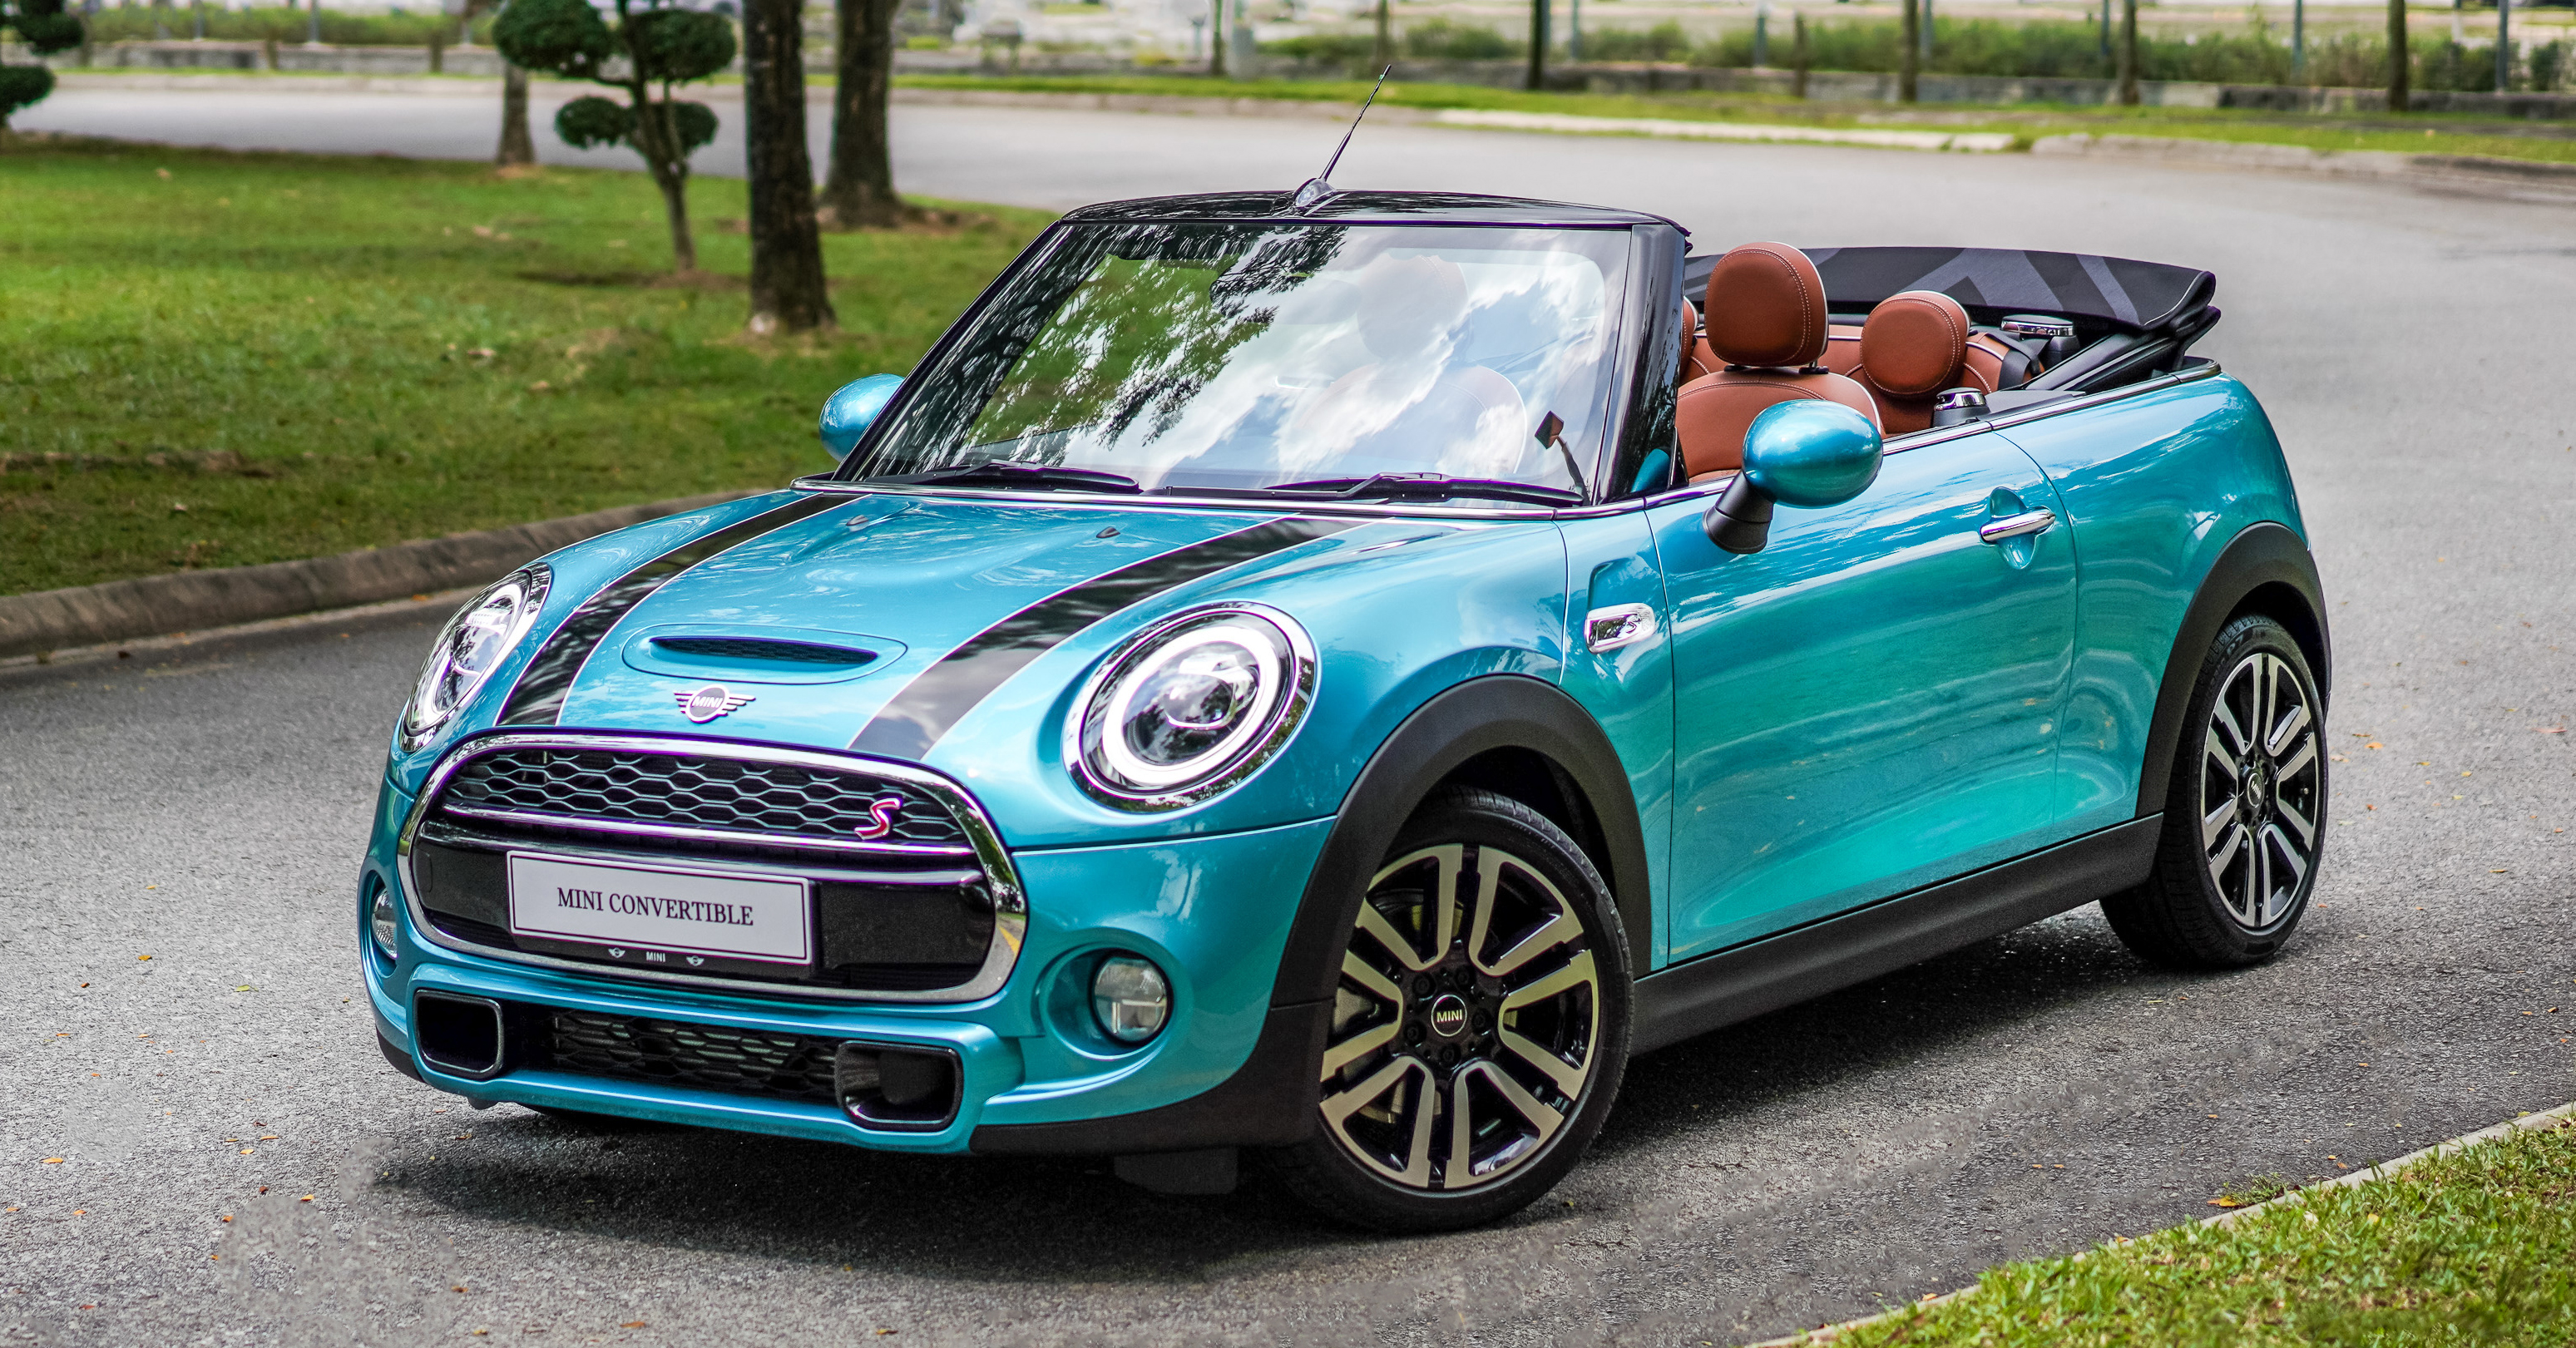 F57 Mini Cooper S Convertible Facelift Launched In Malaysia Limited To Just 20 Units Price From Rm280k Paultan Org